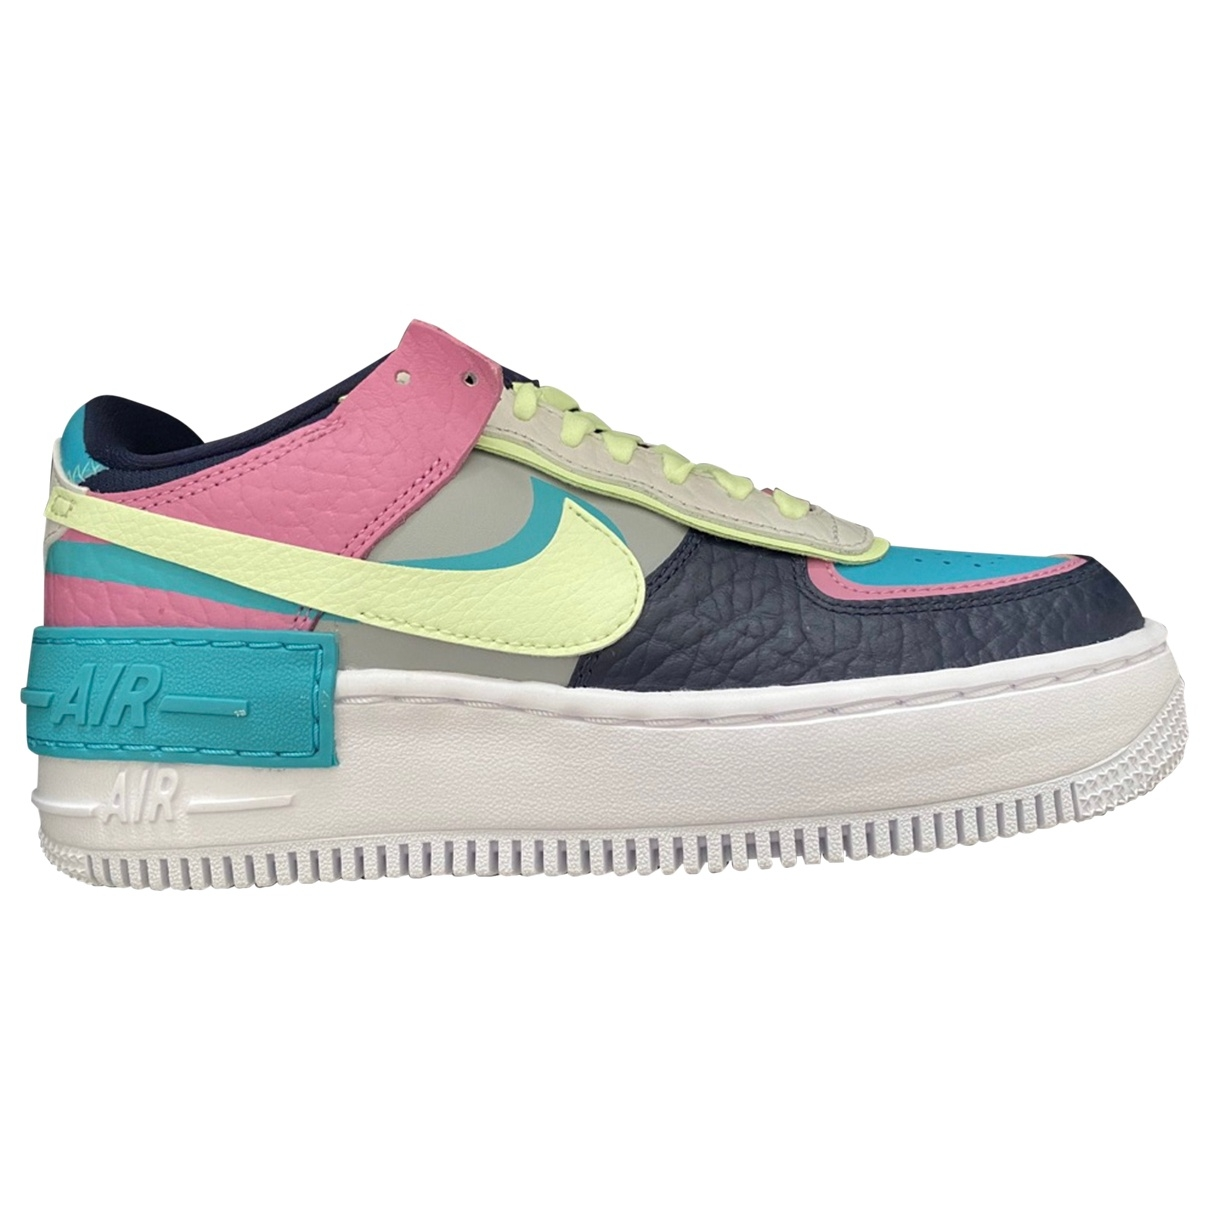 Nike Air Force 1 Black Leather Trainers for Women 36 EU